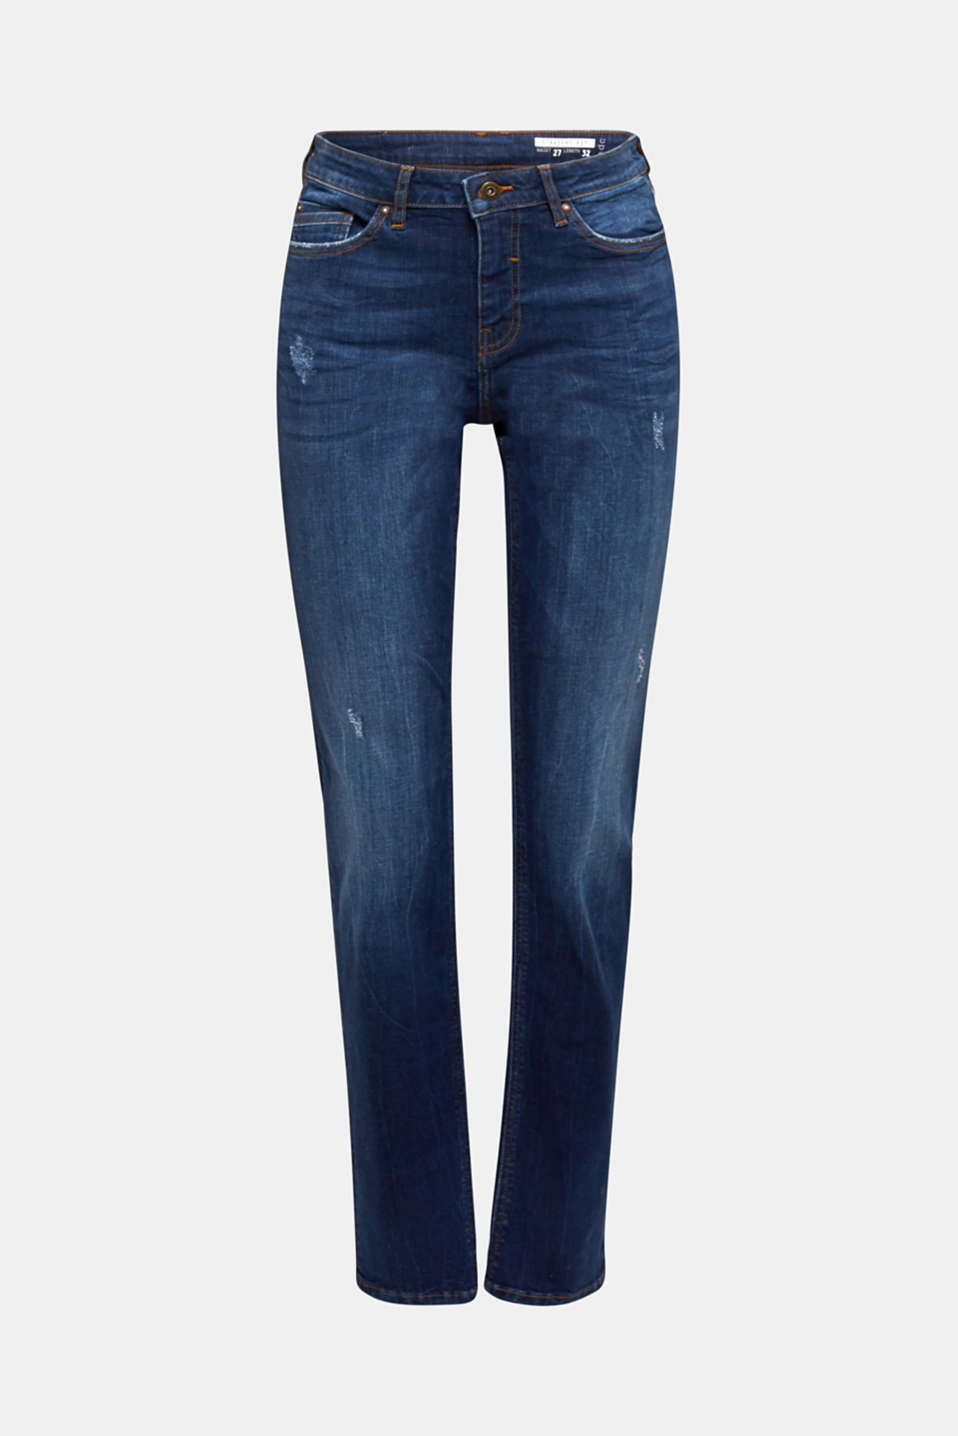 Stretch jeans with button-fastening flap pockets, BLUE DARK WASH, detail image number 7